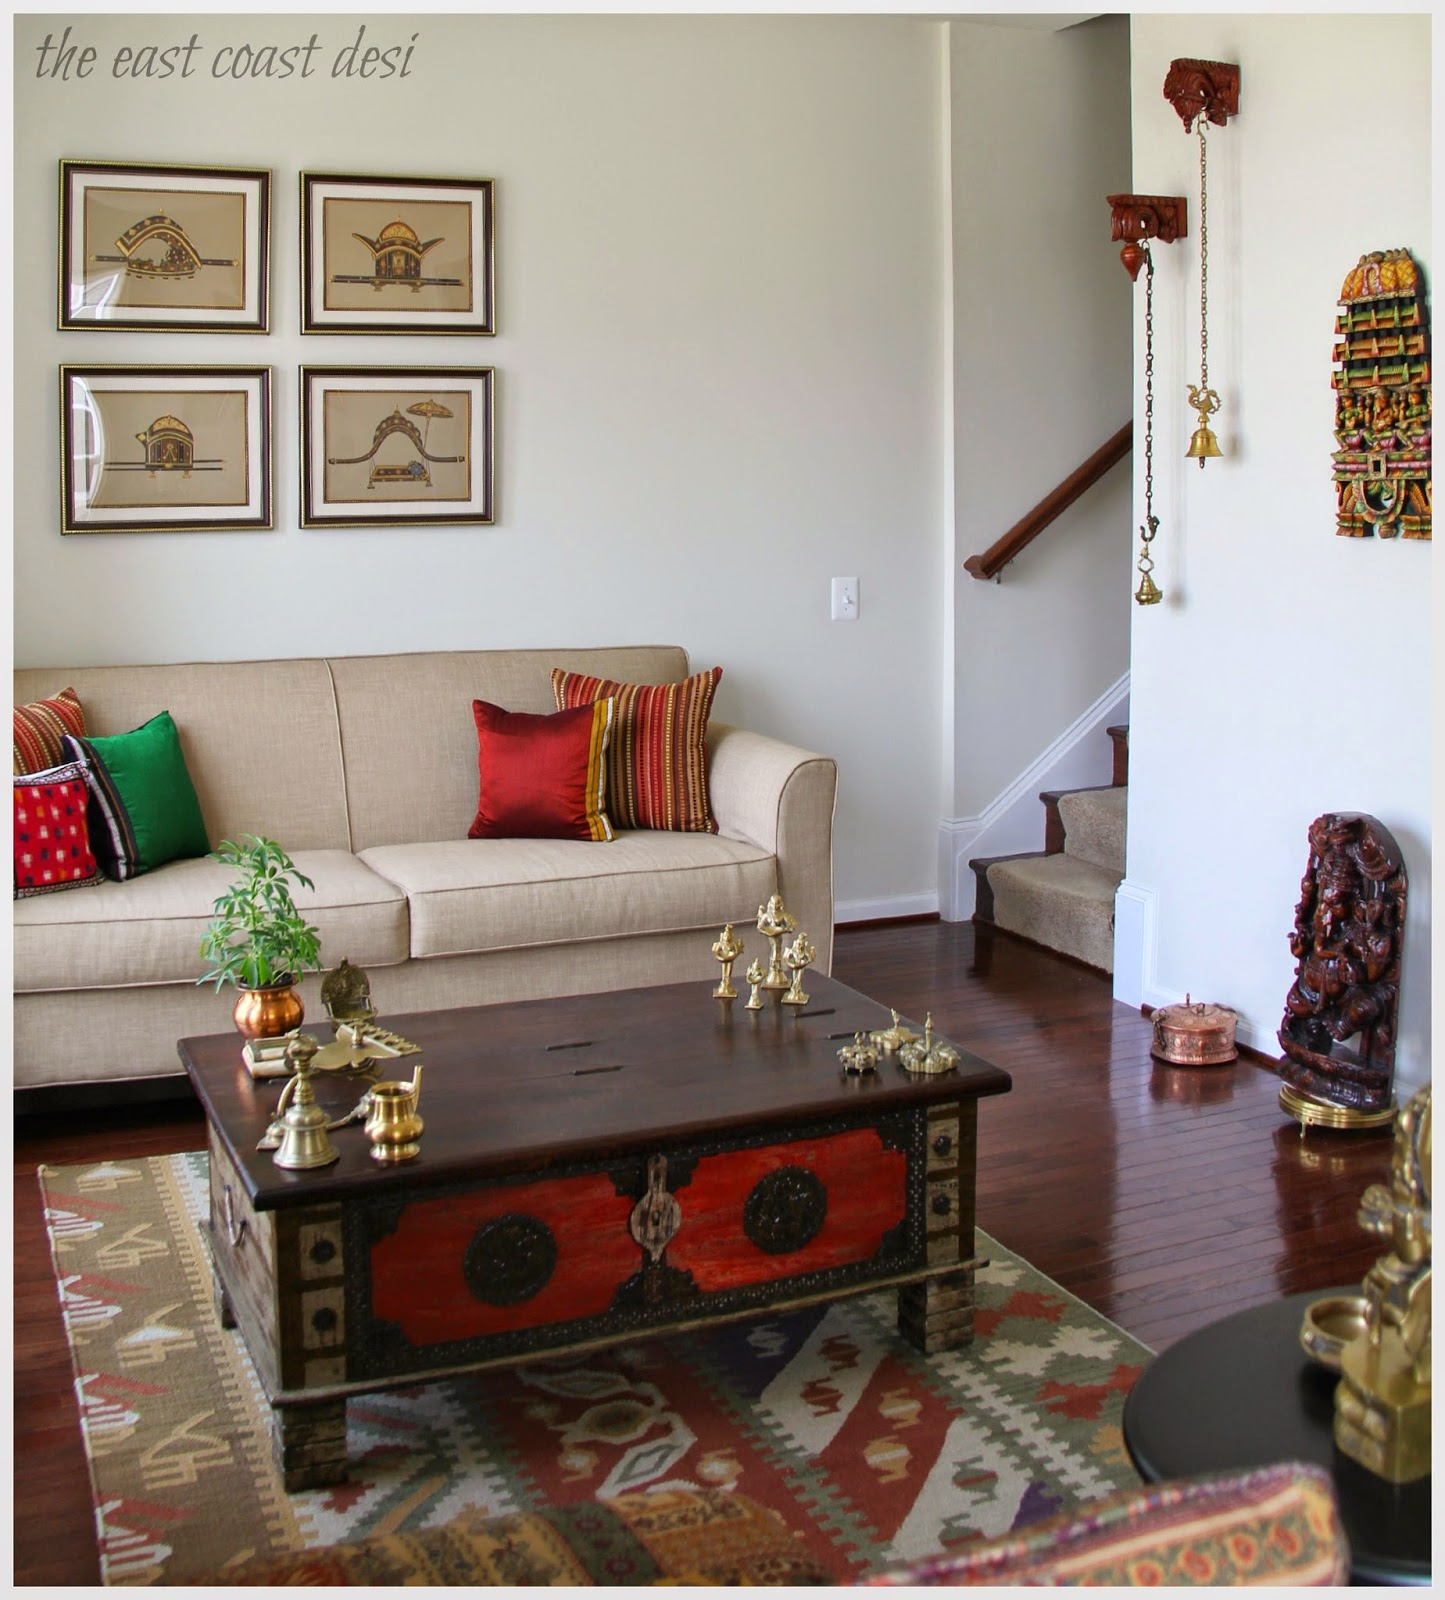 The East Coast Desi: My Home, A Personal Repository